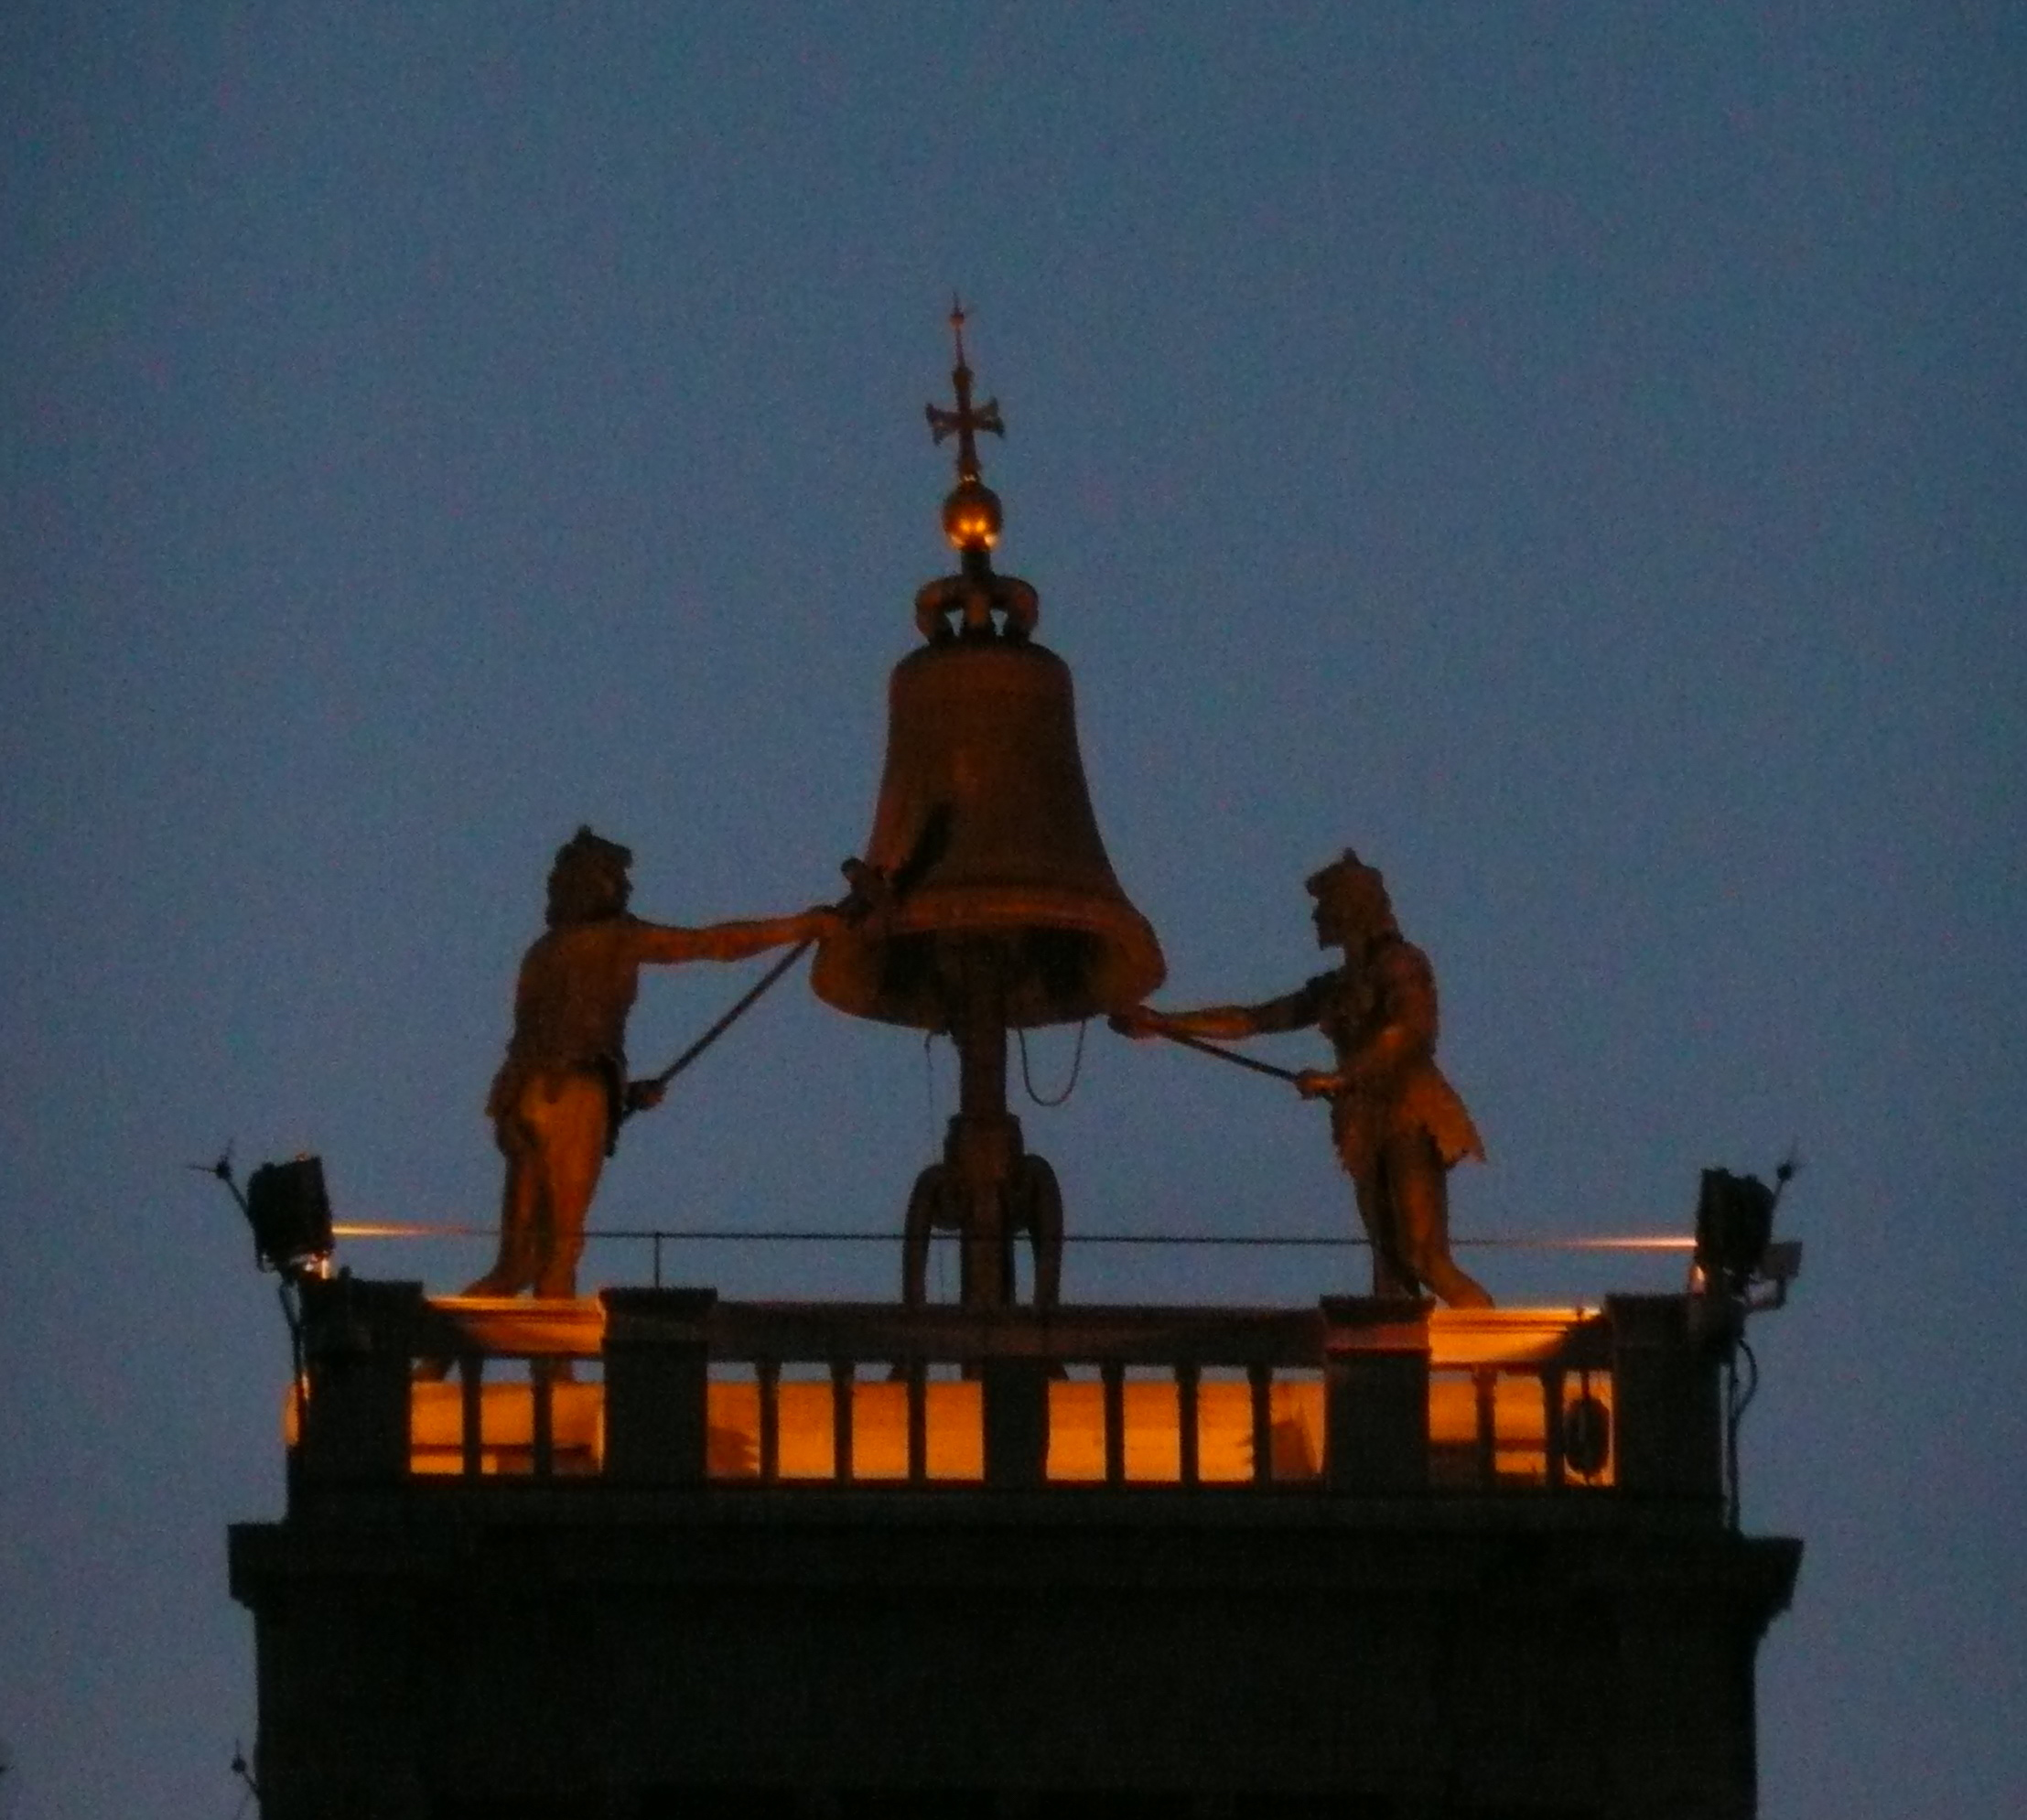 The Moors on the clock tower